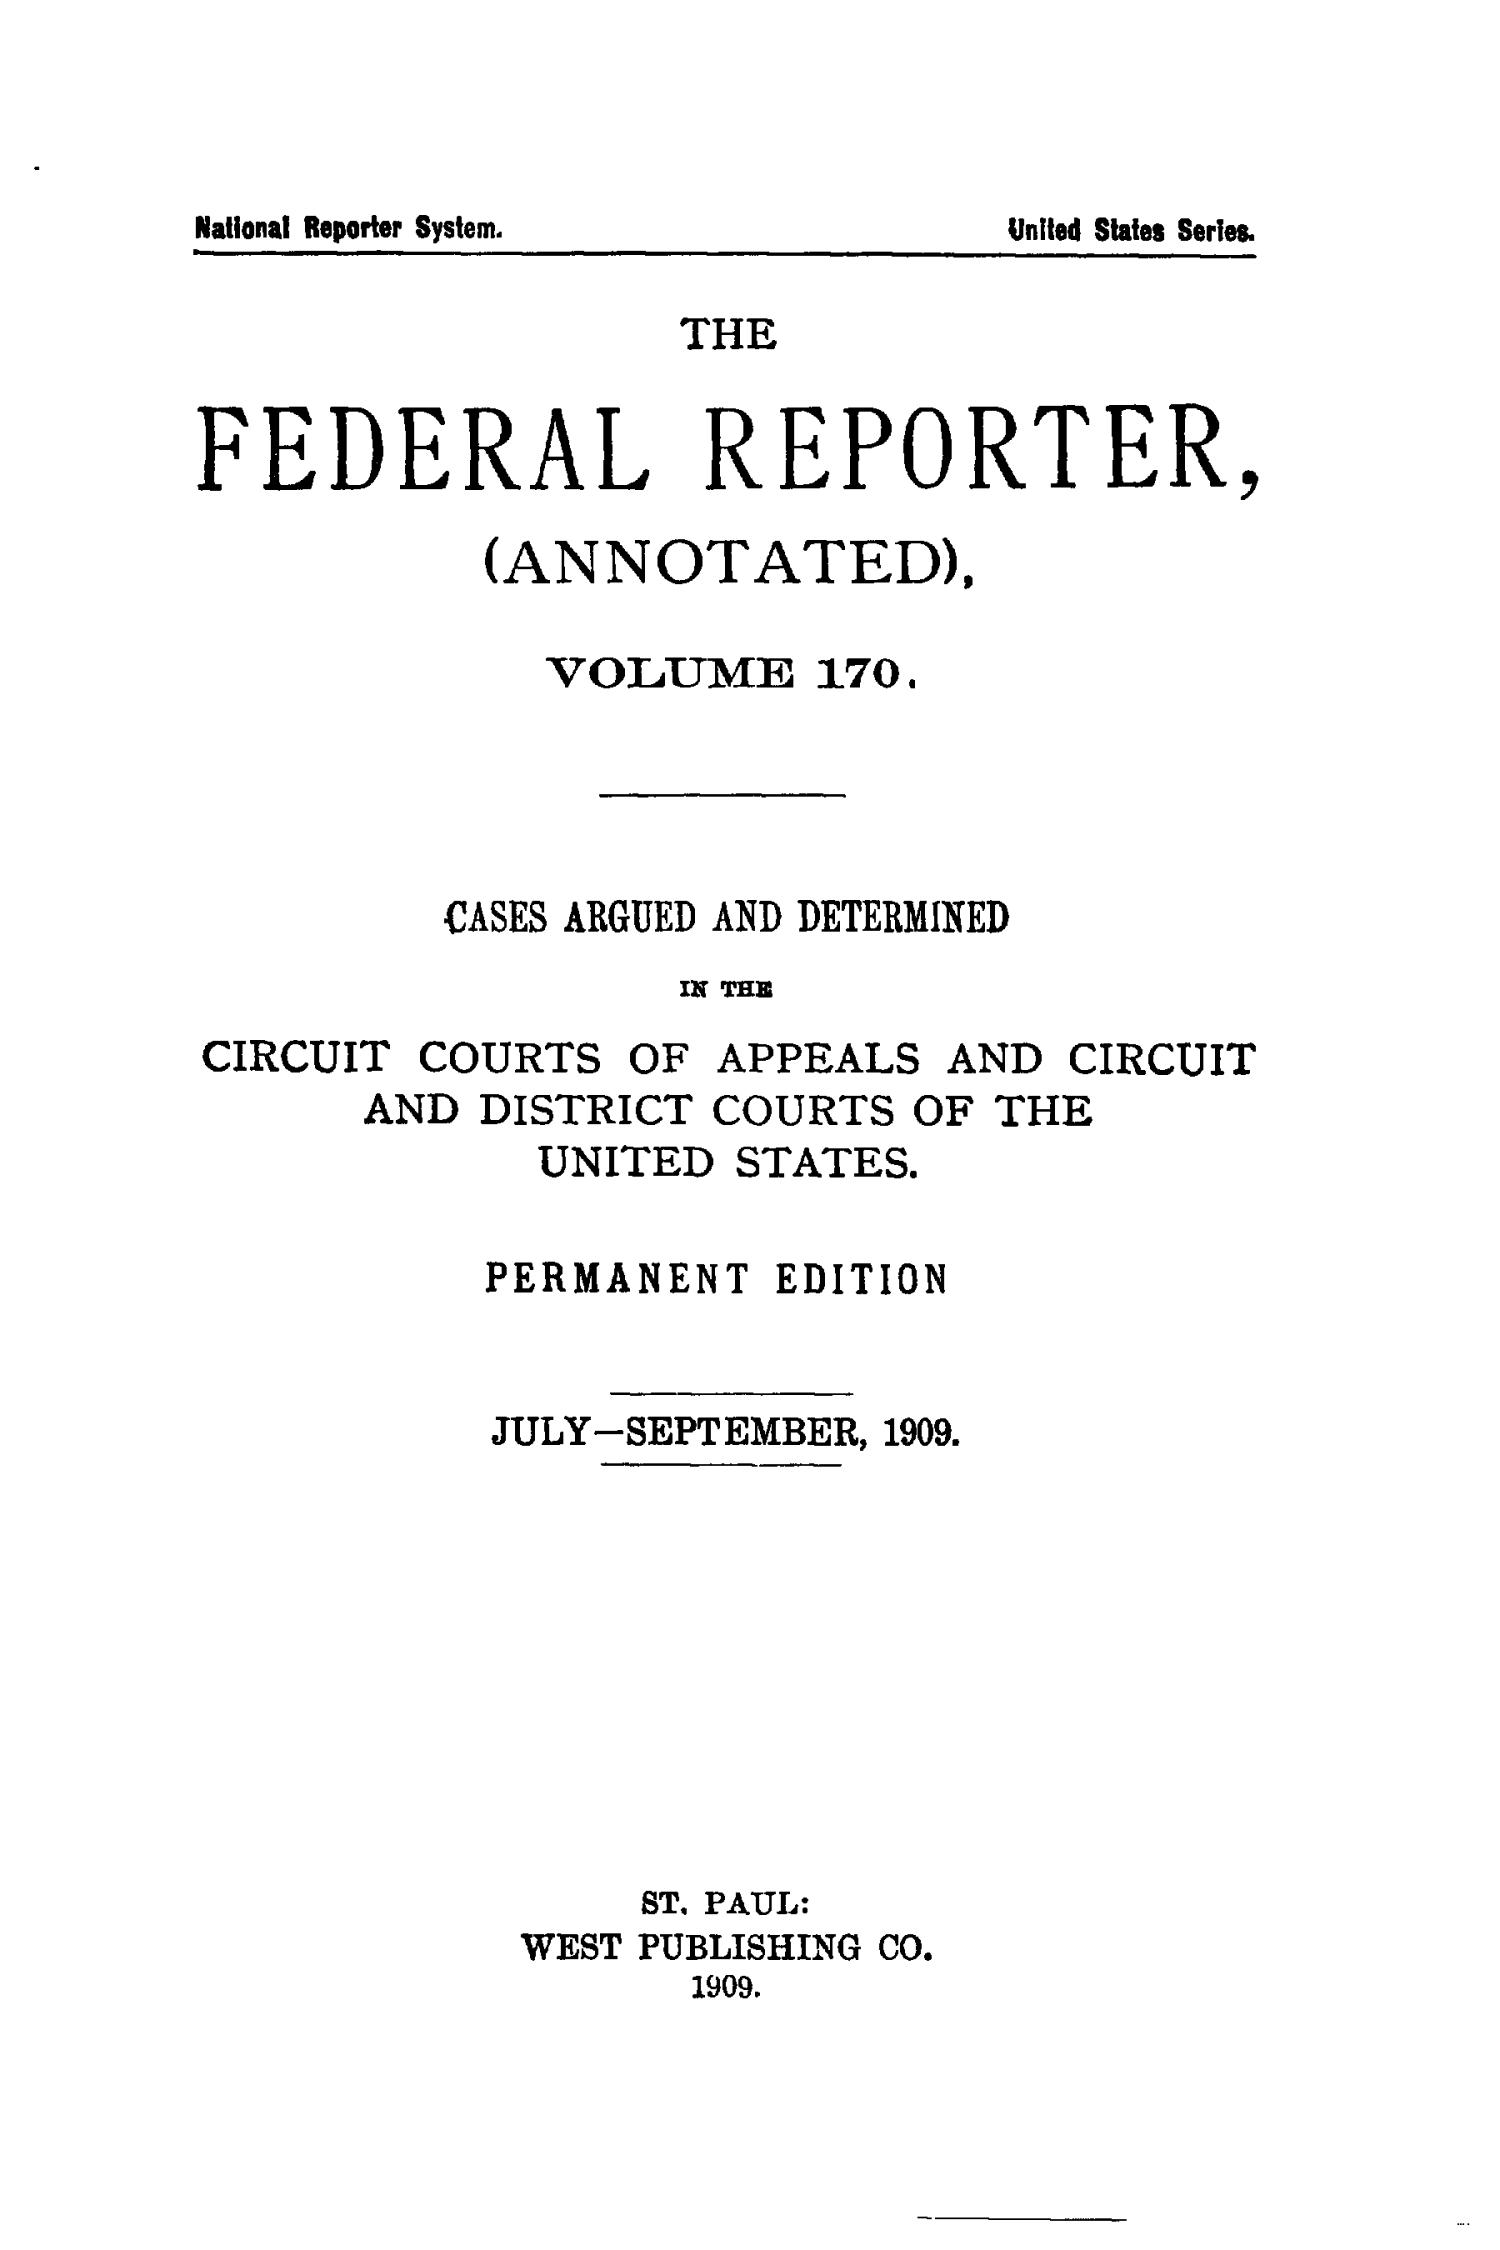 The Federal Reporter (Annotated), Volume 170: Cases Argued and Determined in the Circuit Courts of Appeals and Circuit and District Courts of the United States. July-September, 1909.                                                                                                      Title Page